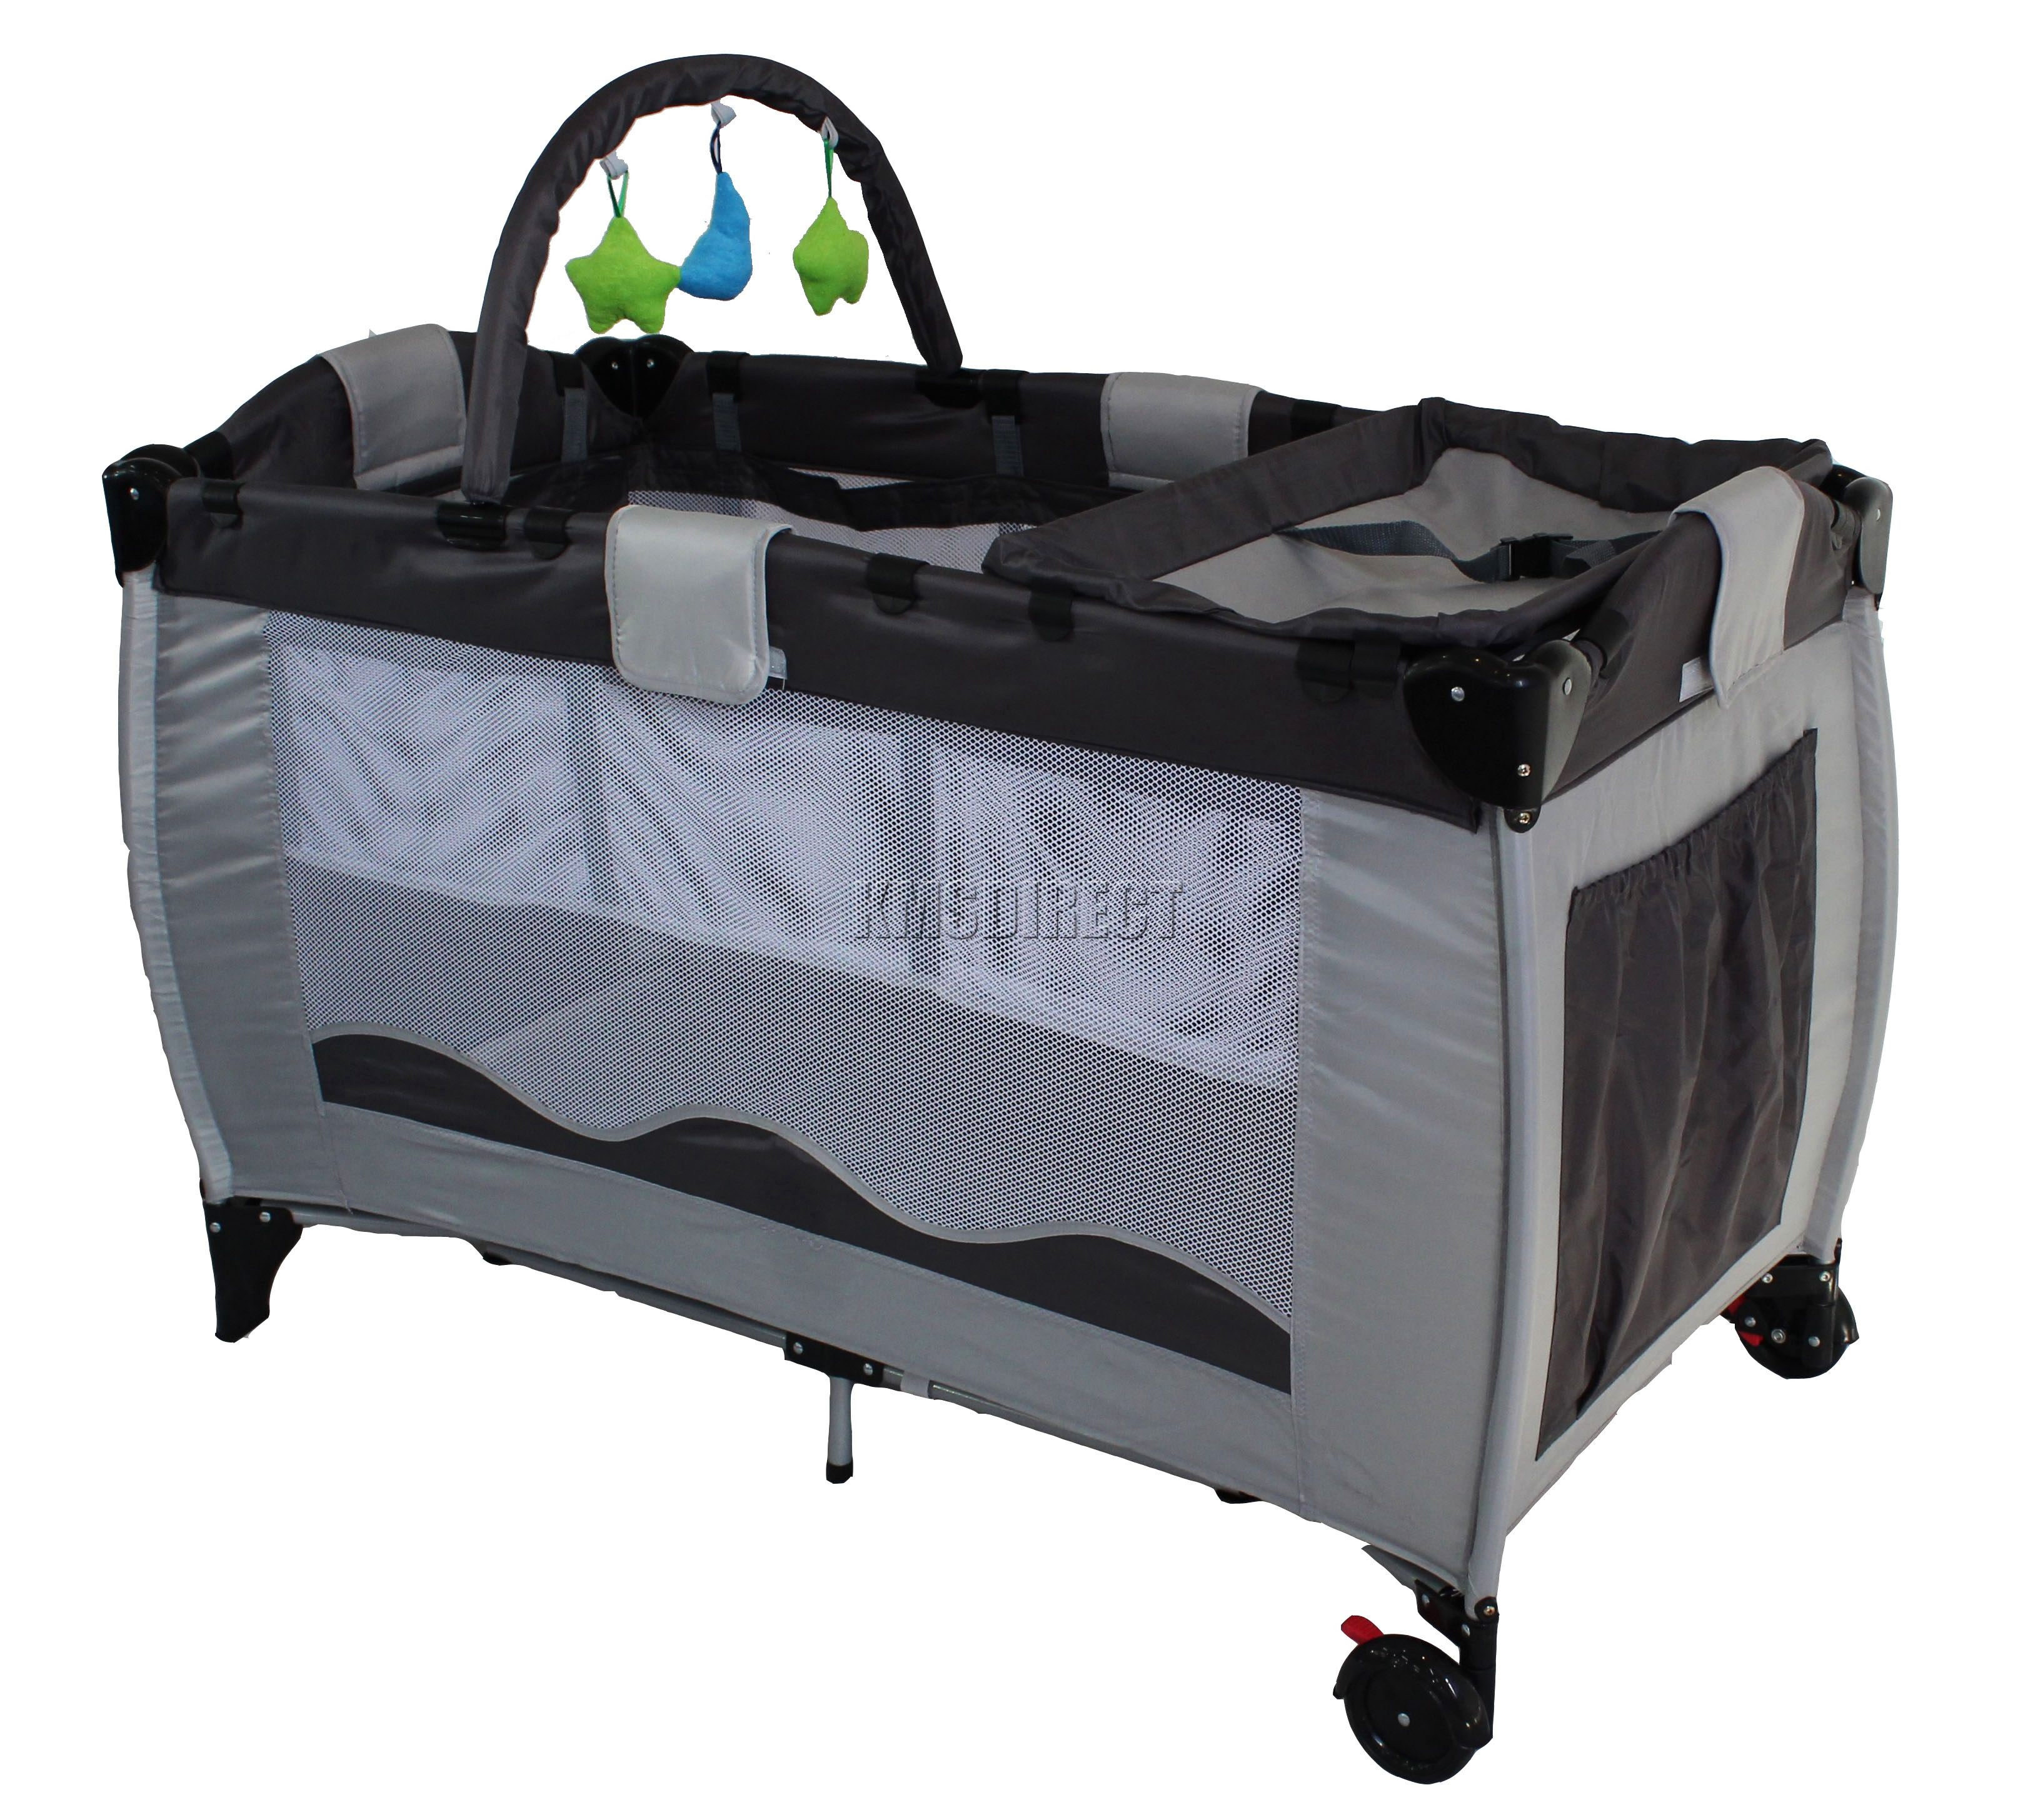 portable playpen - new portable child baby travel cot bed bassinet playpen play pen